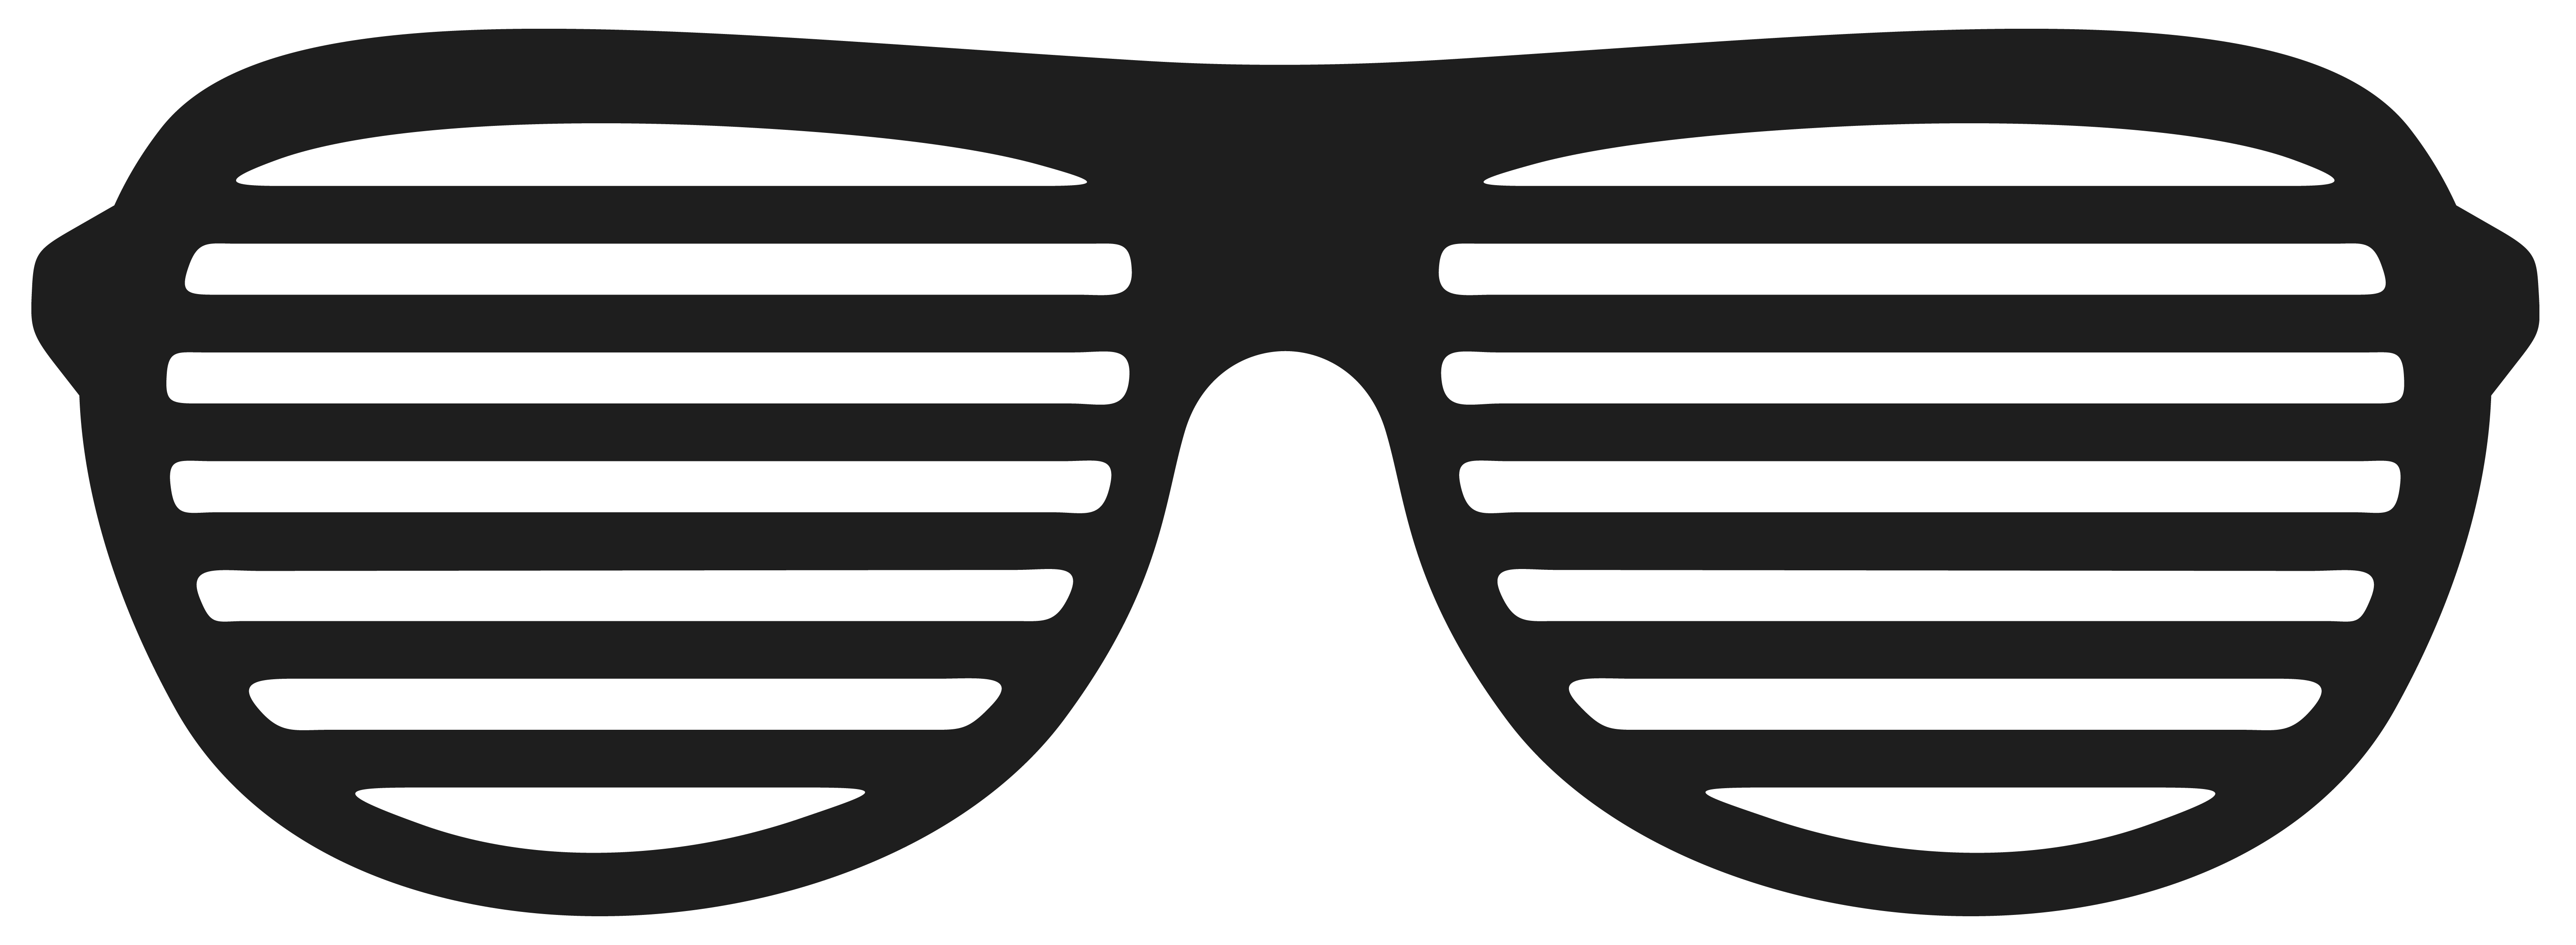 Movember Shutter Glasses Png Clipart Image Gallery Yopriceville High Quality Images And Transparent Png Free Clipart Clip Art Clipart Images Free Clip Art